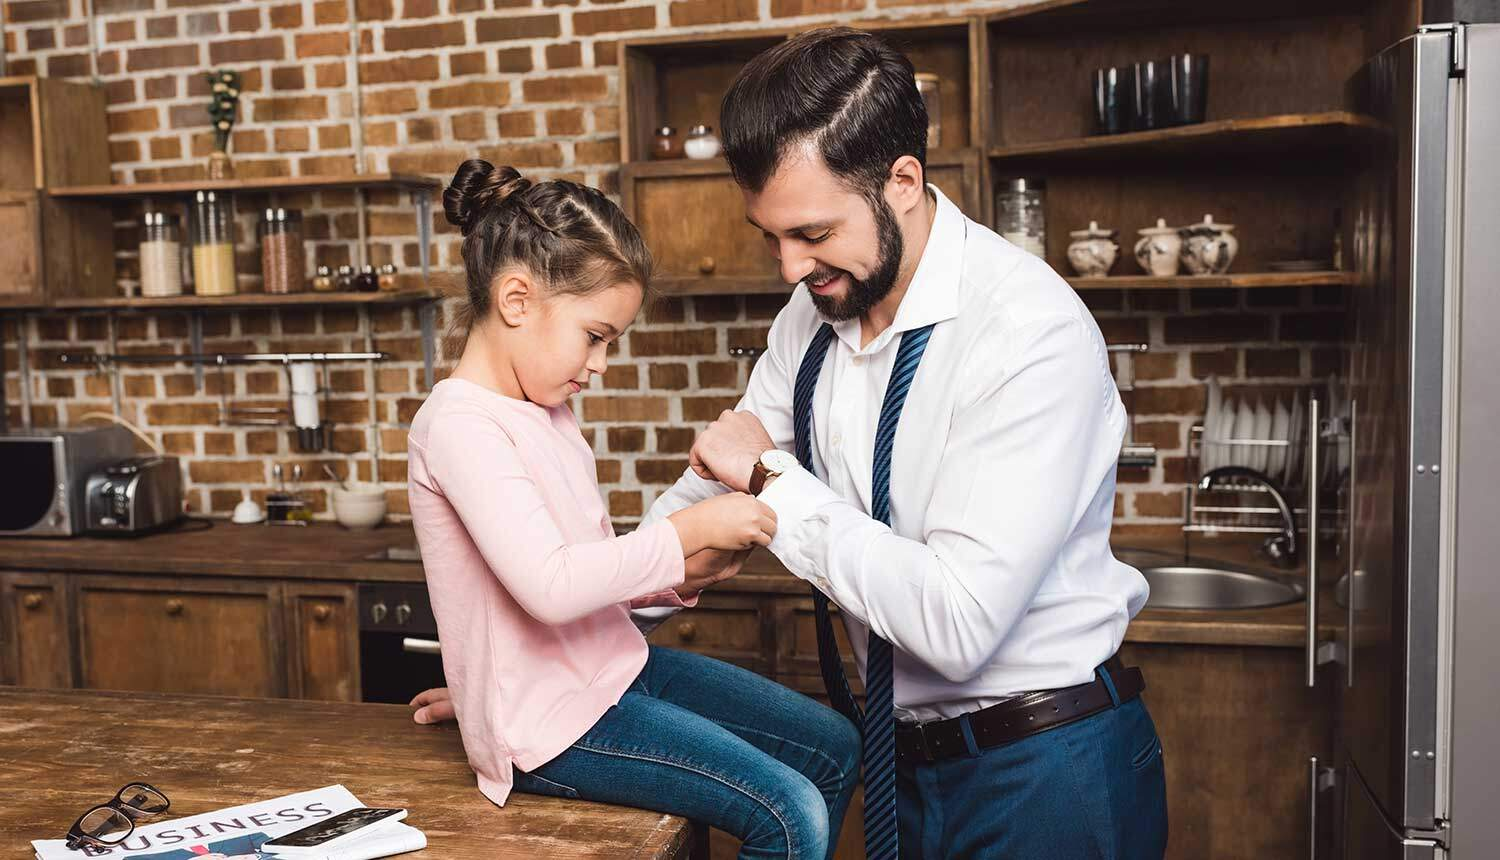 an image of a young girl helping her father fasten his cufflinks